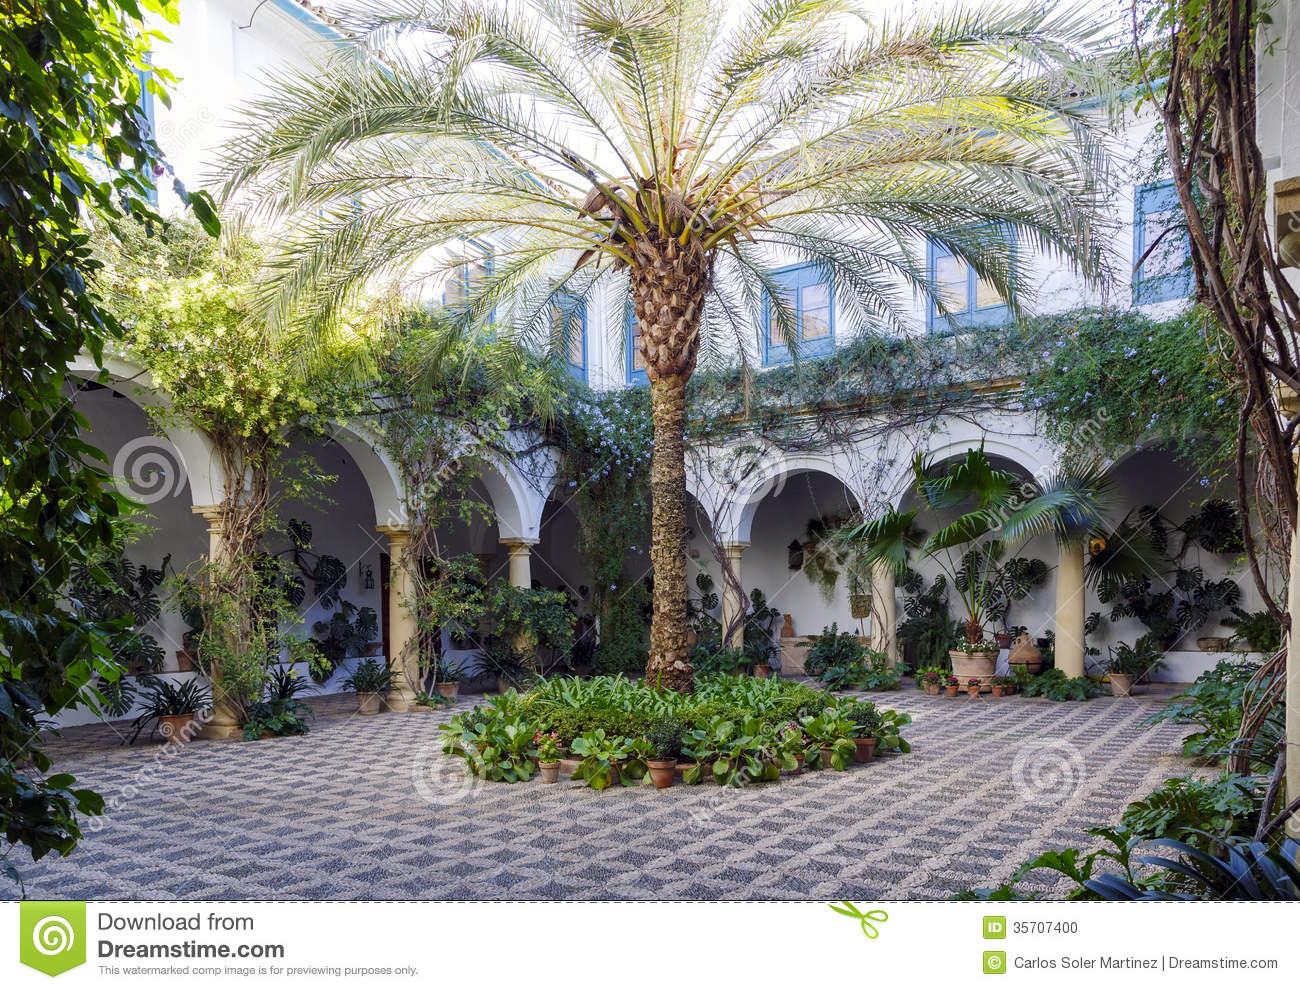 11044 as well 56717276529493067 together with Stock Photos Spanish Garden Saint Jean Cap Ferrat French Riviera Image31200713 besides Transitional Home Design also House Plans On Florida Style Home With Two. on spanish mediterranean house plans